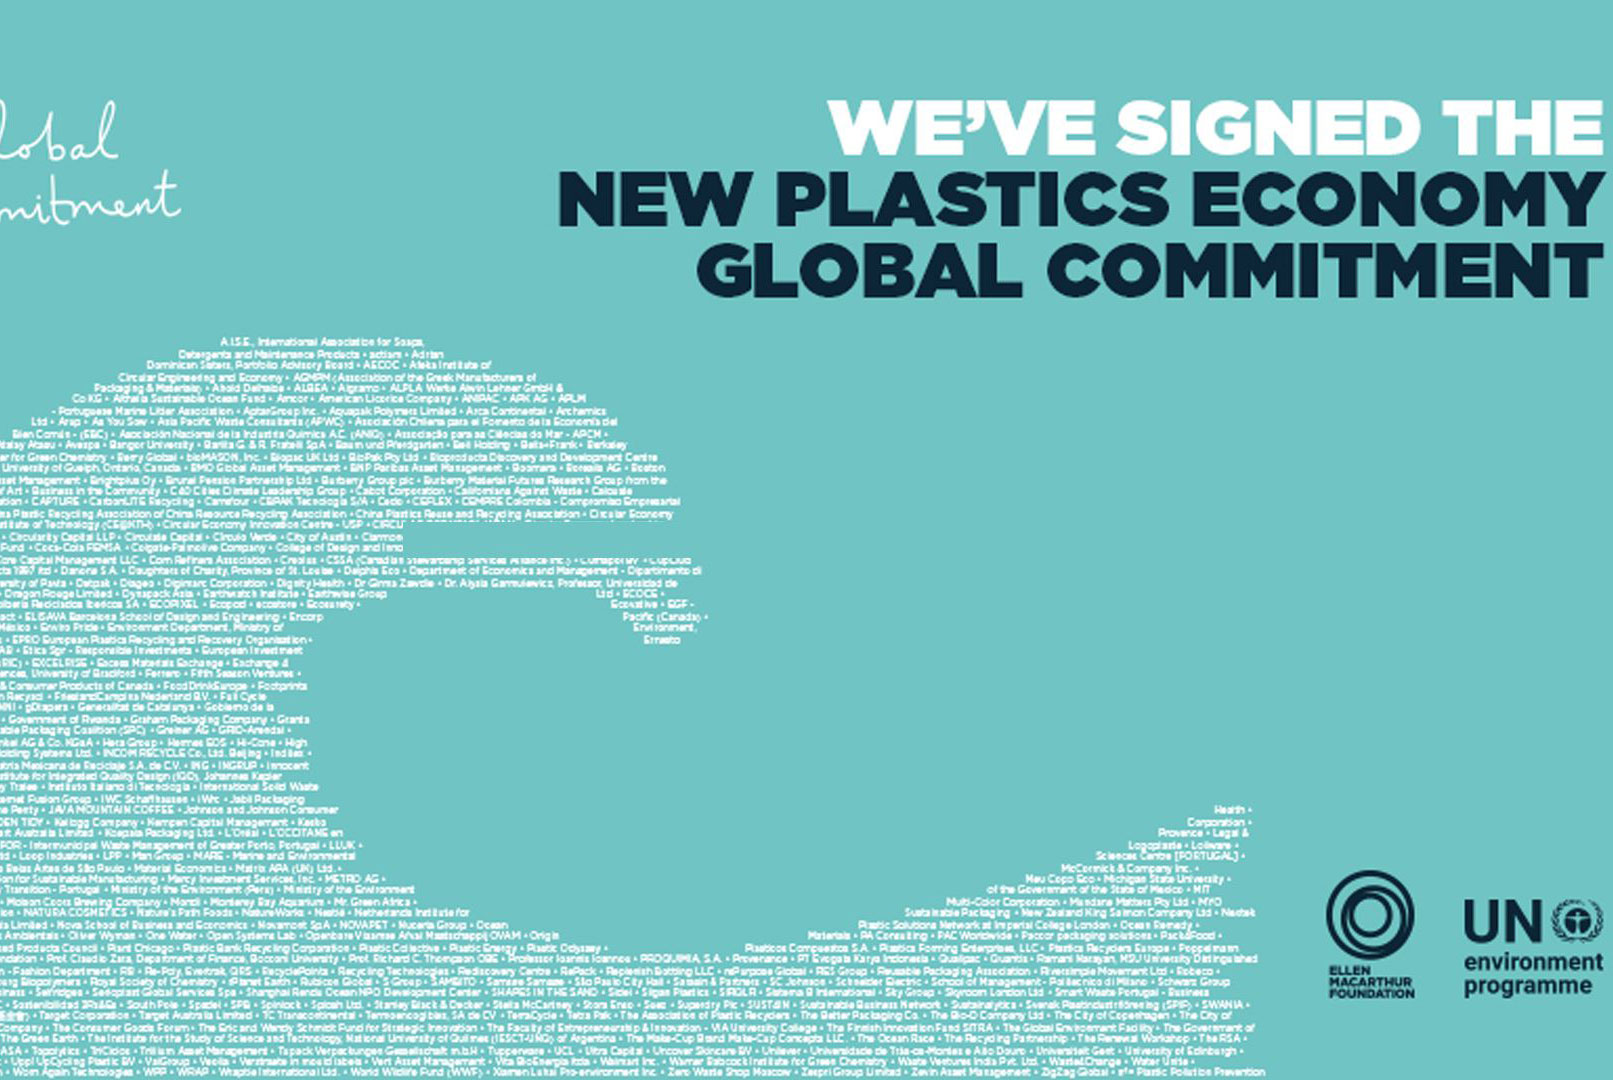 We've Signed the Global Commitment